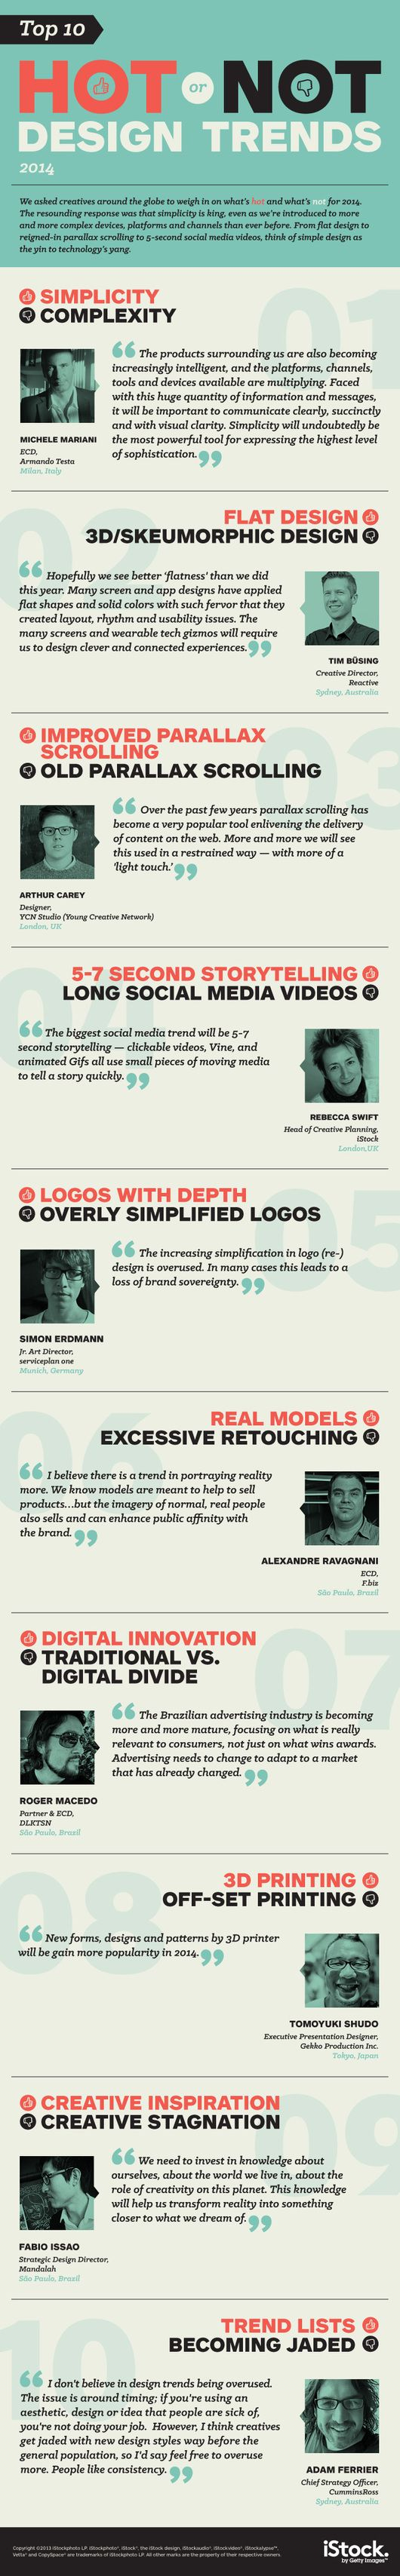 Top 10 Design Trends For 2014